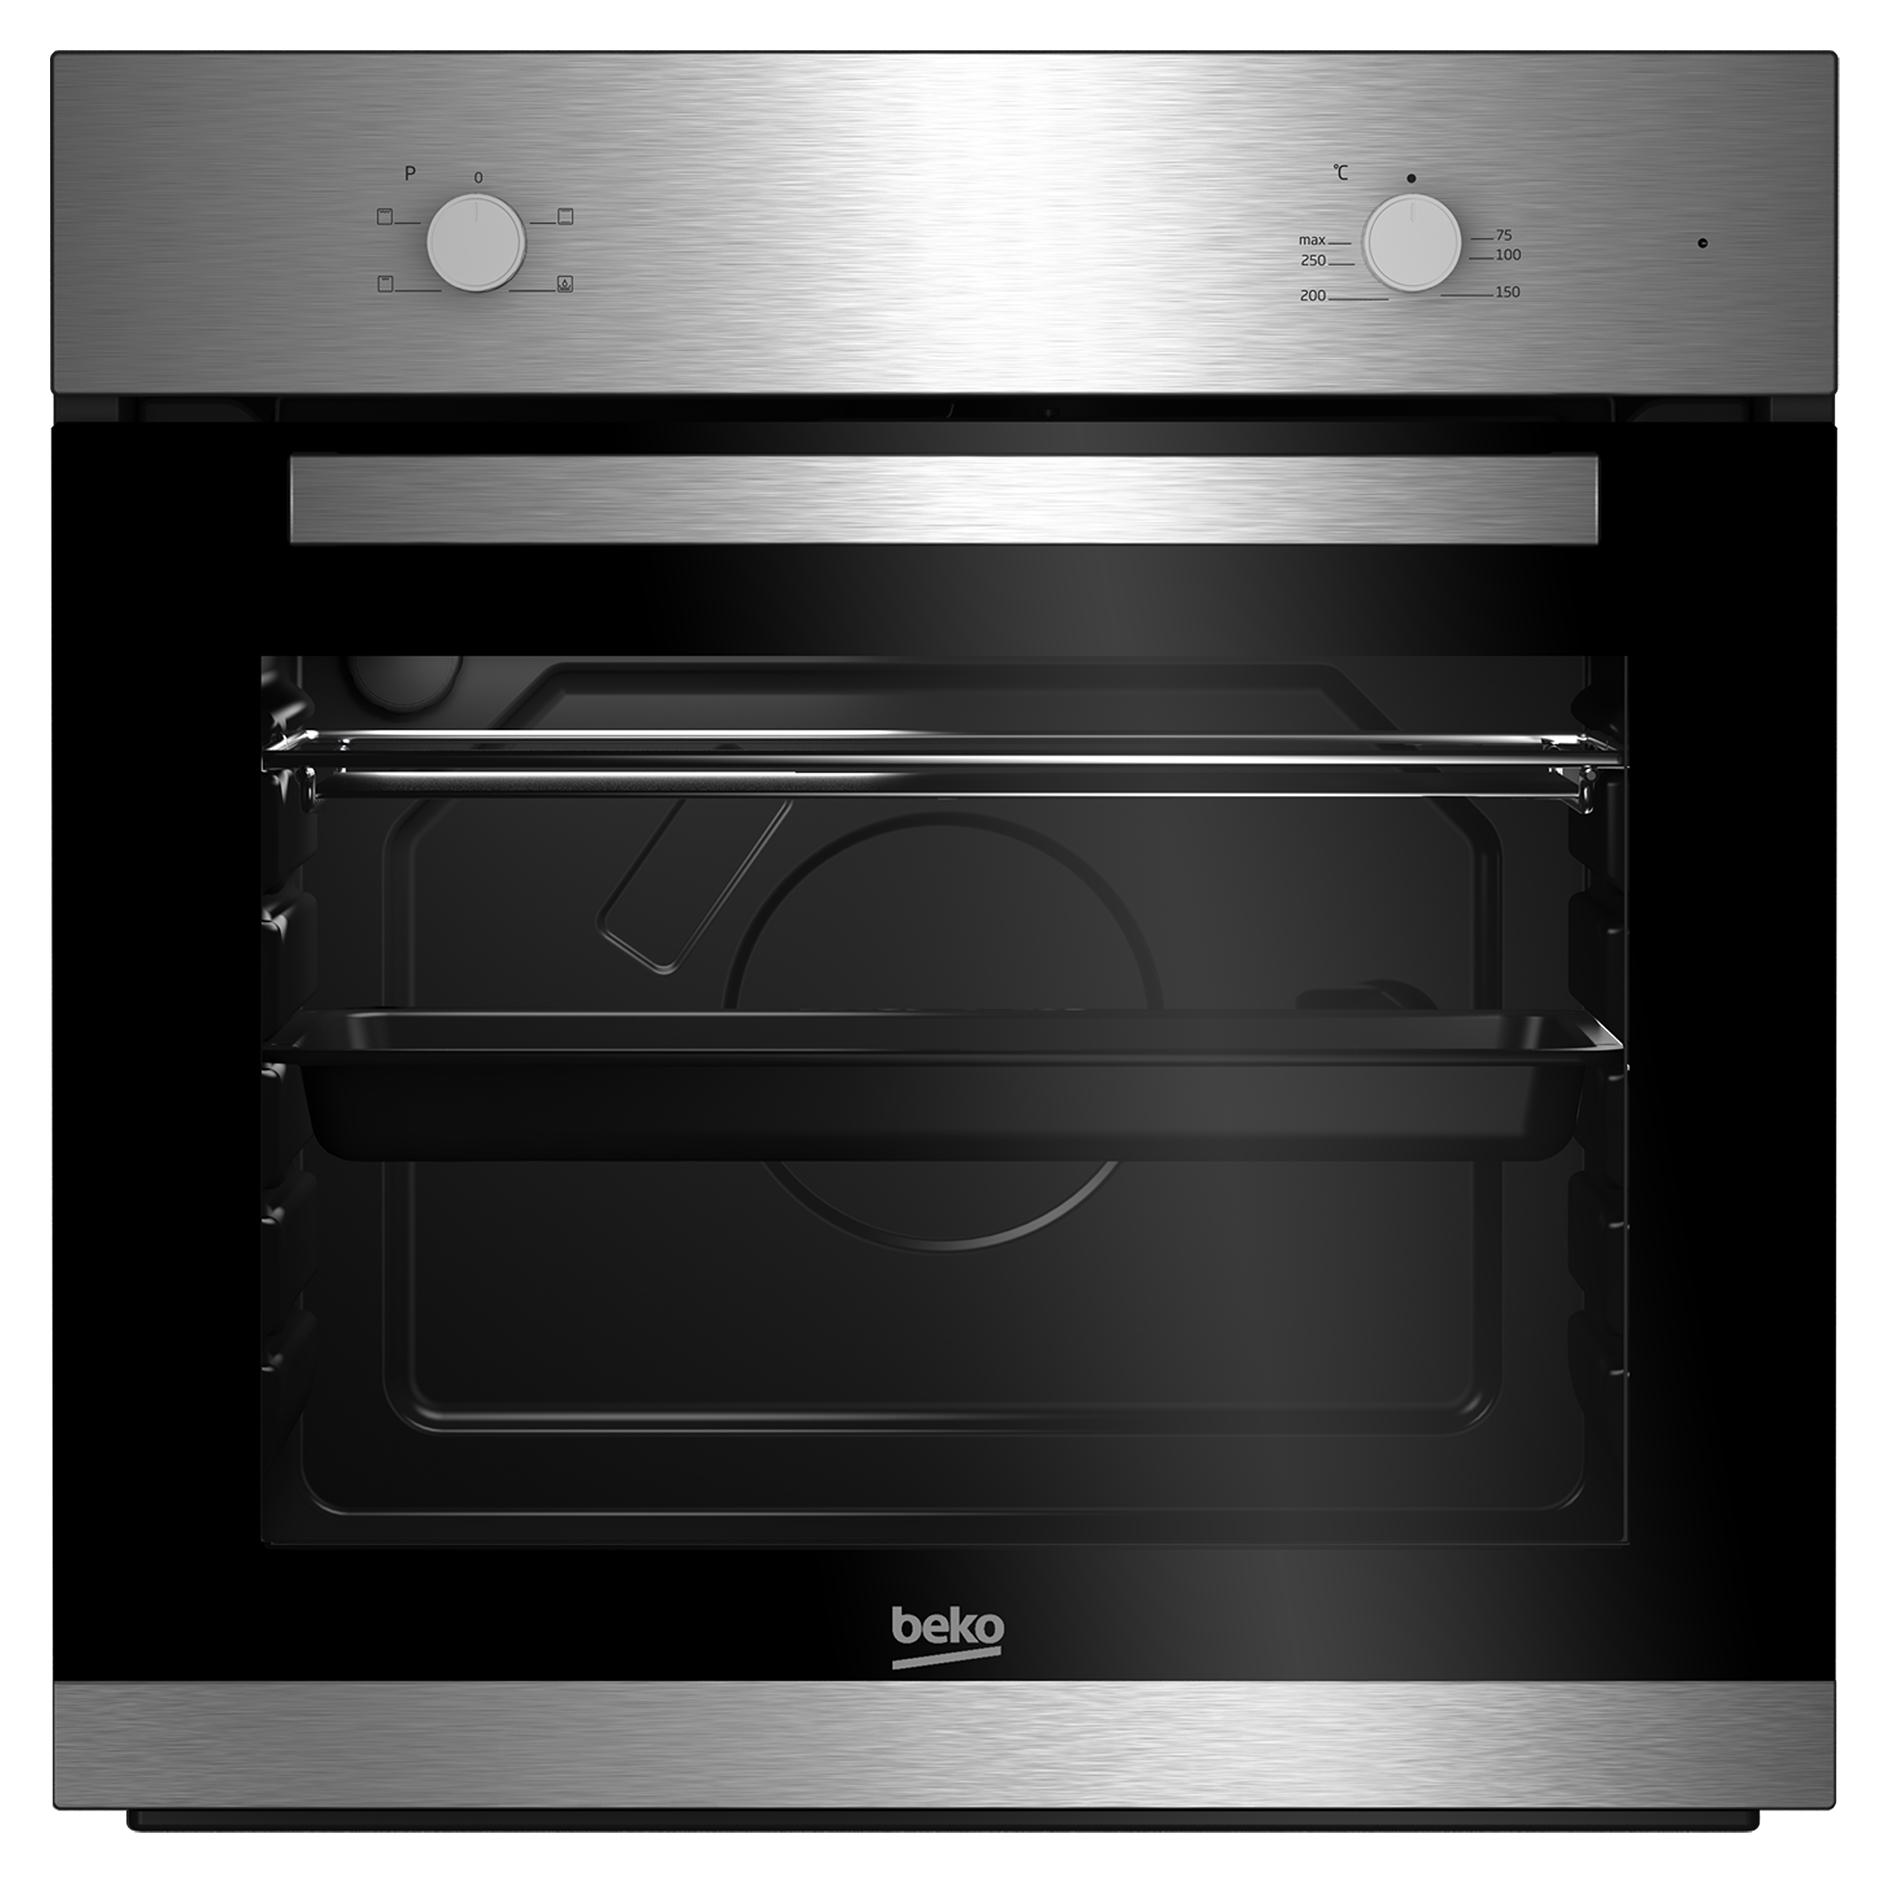 beko bie22000x backofen elektro a 66 l vollglas innent r silber schnellaufheizung. Black Bedroom Furniture Sets. Home Design Ideas